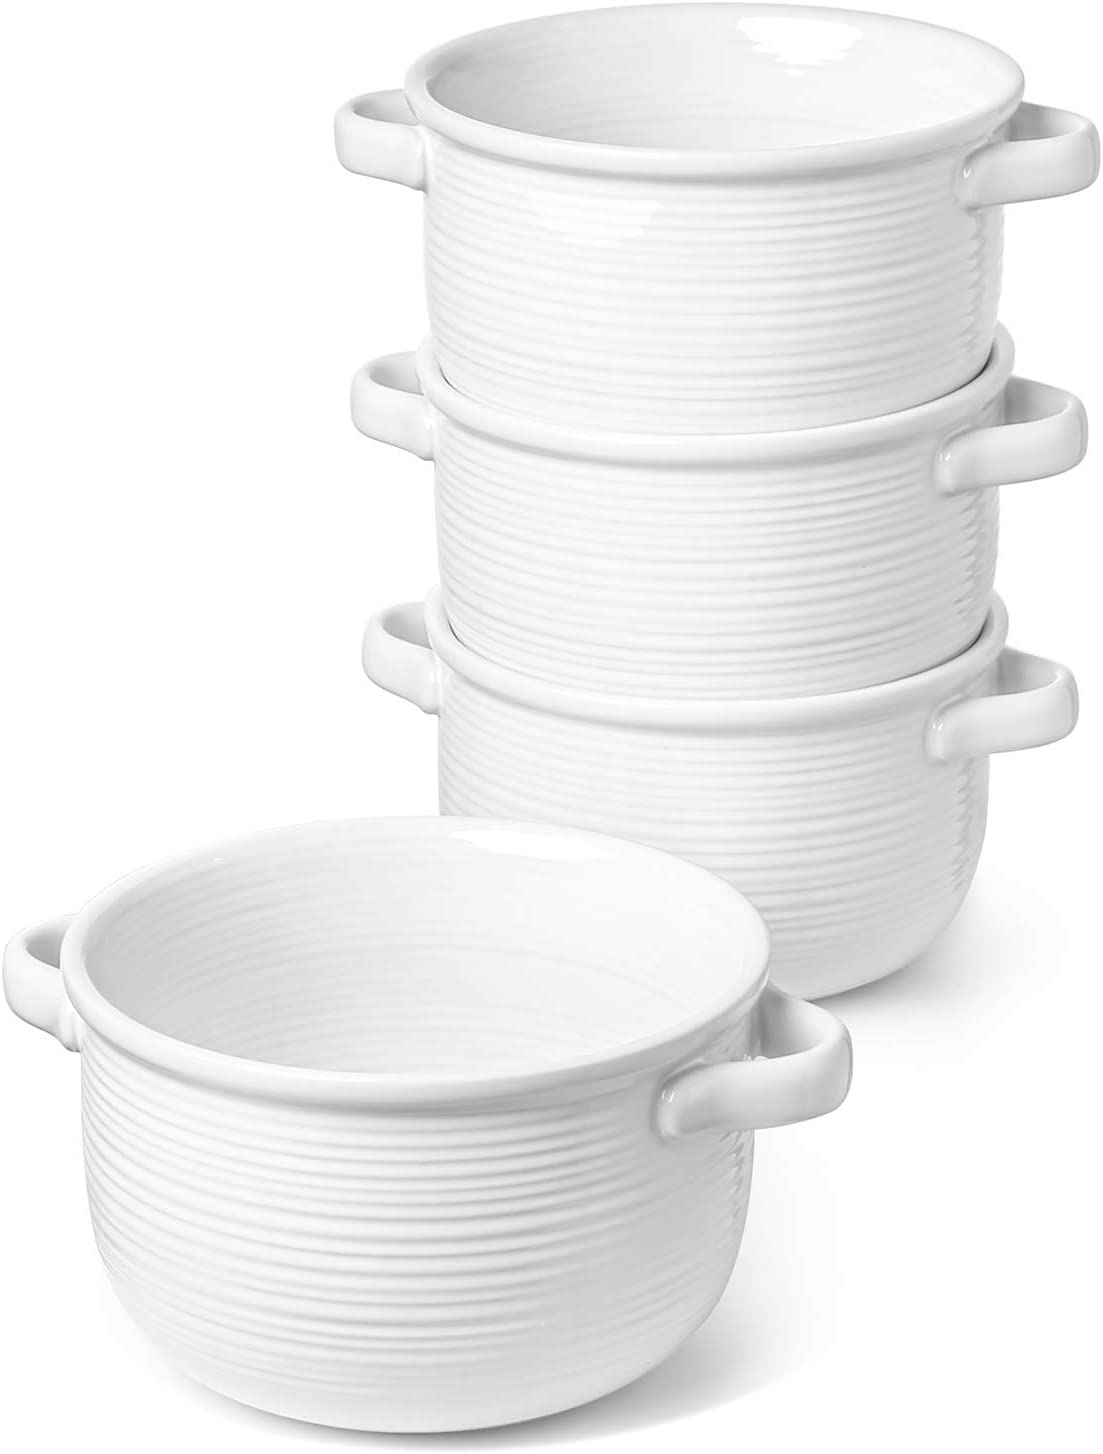 Soup Bowls With Handles, Set of 4